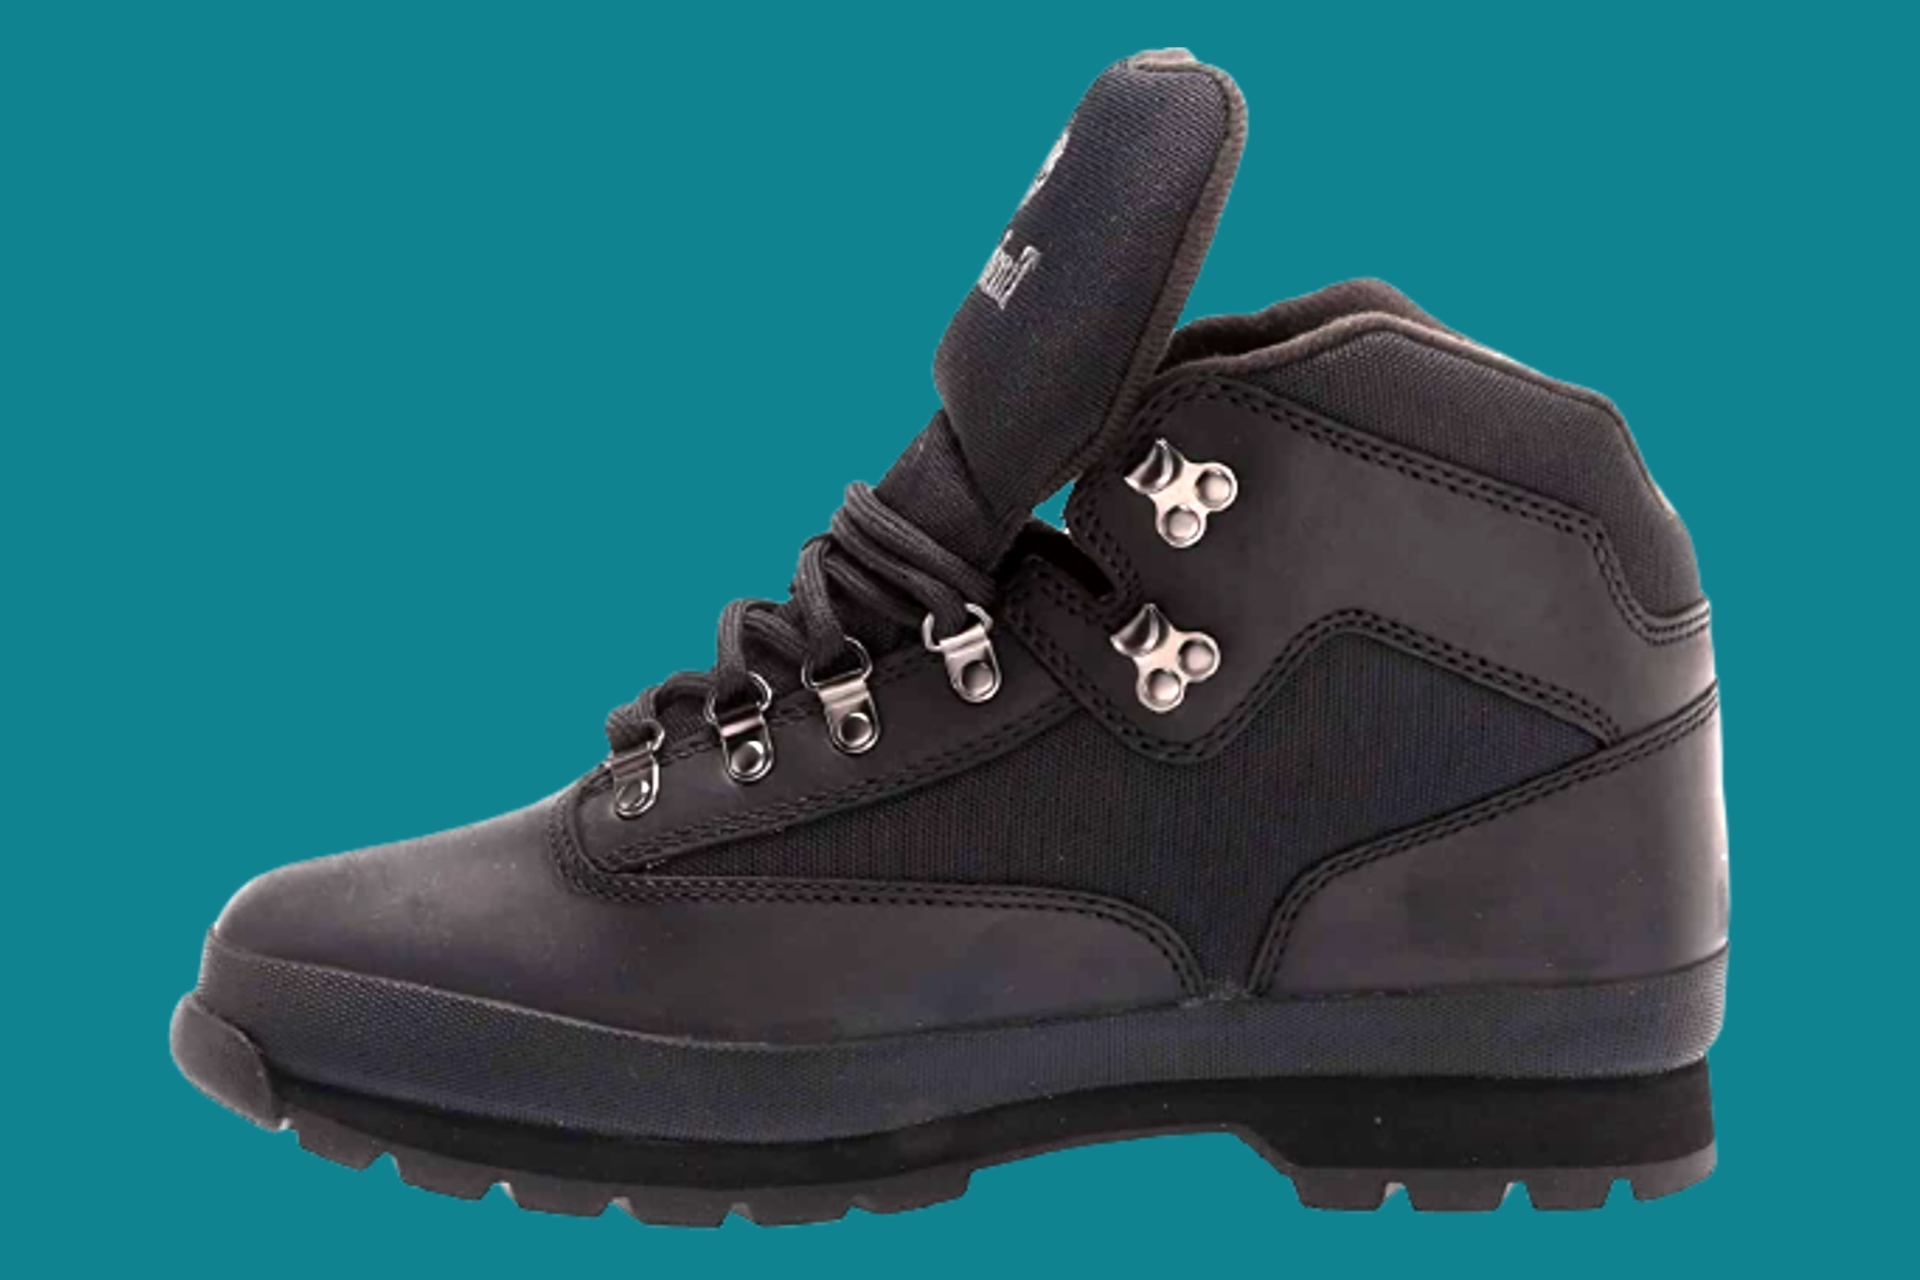 Best hiking boots by Timberland